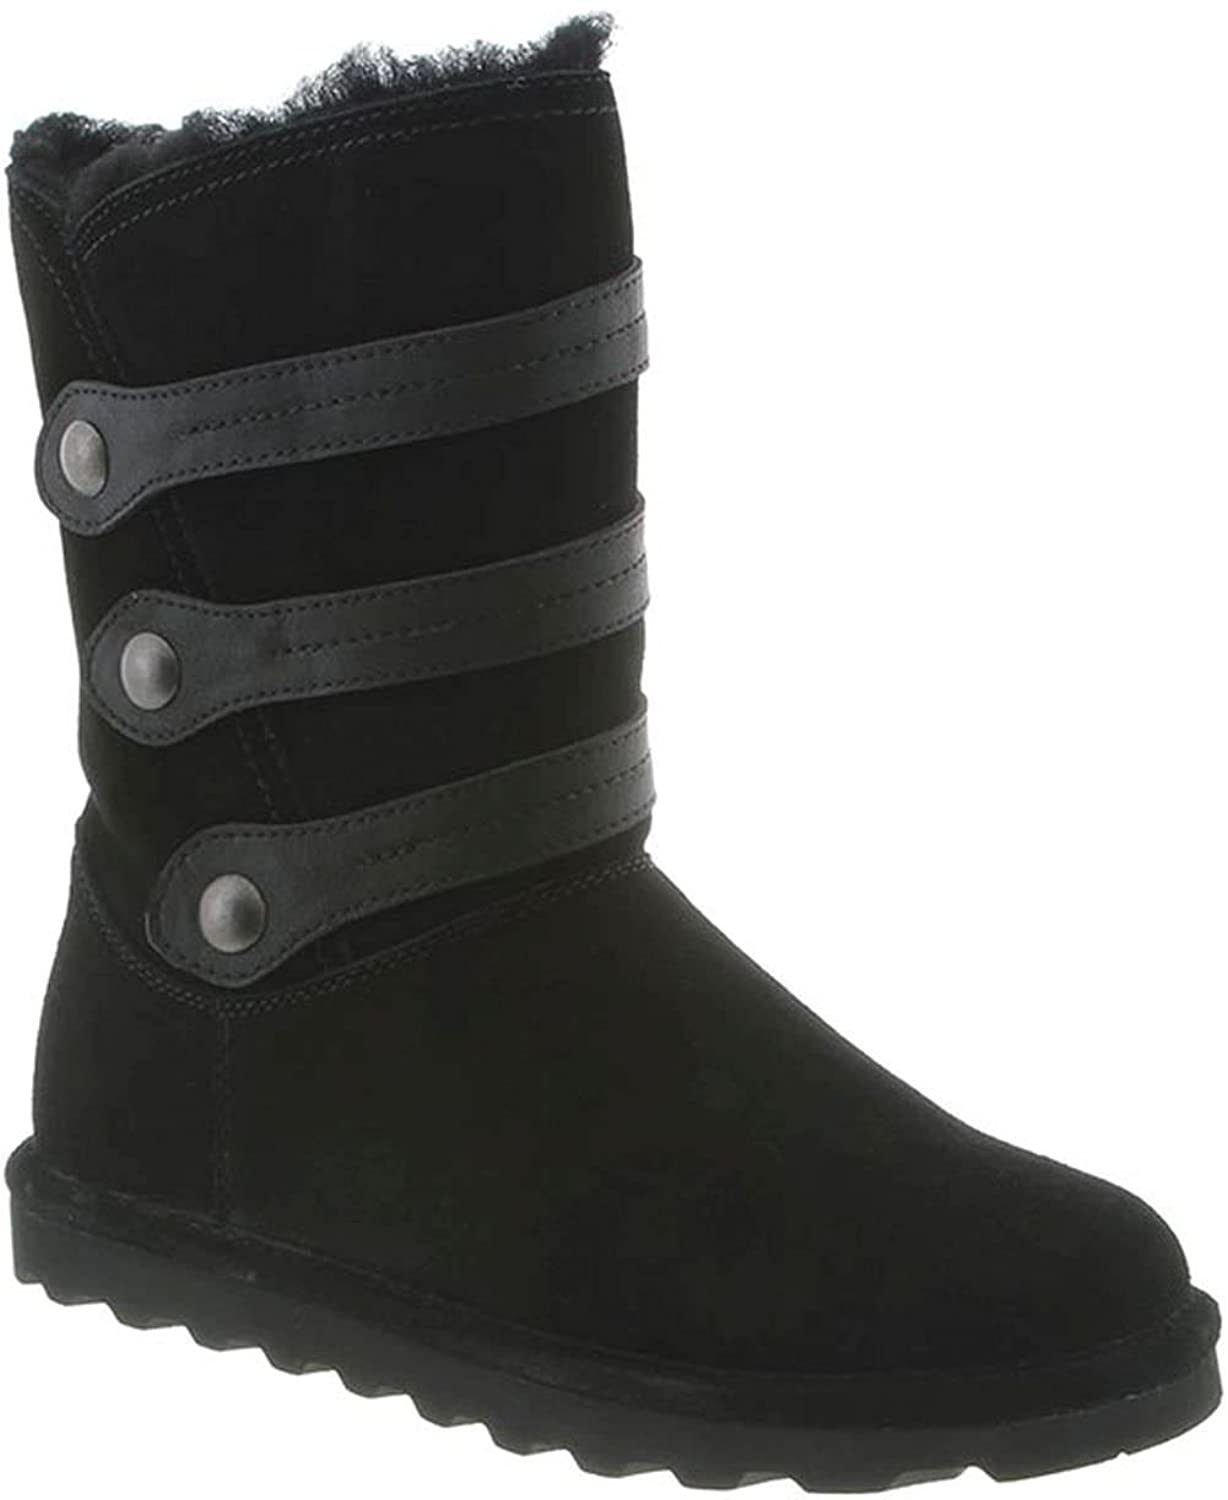 BEARPAW Women's Luna Fashion Boot, Black, 7 M US